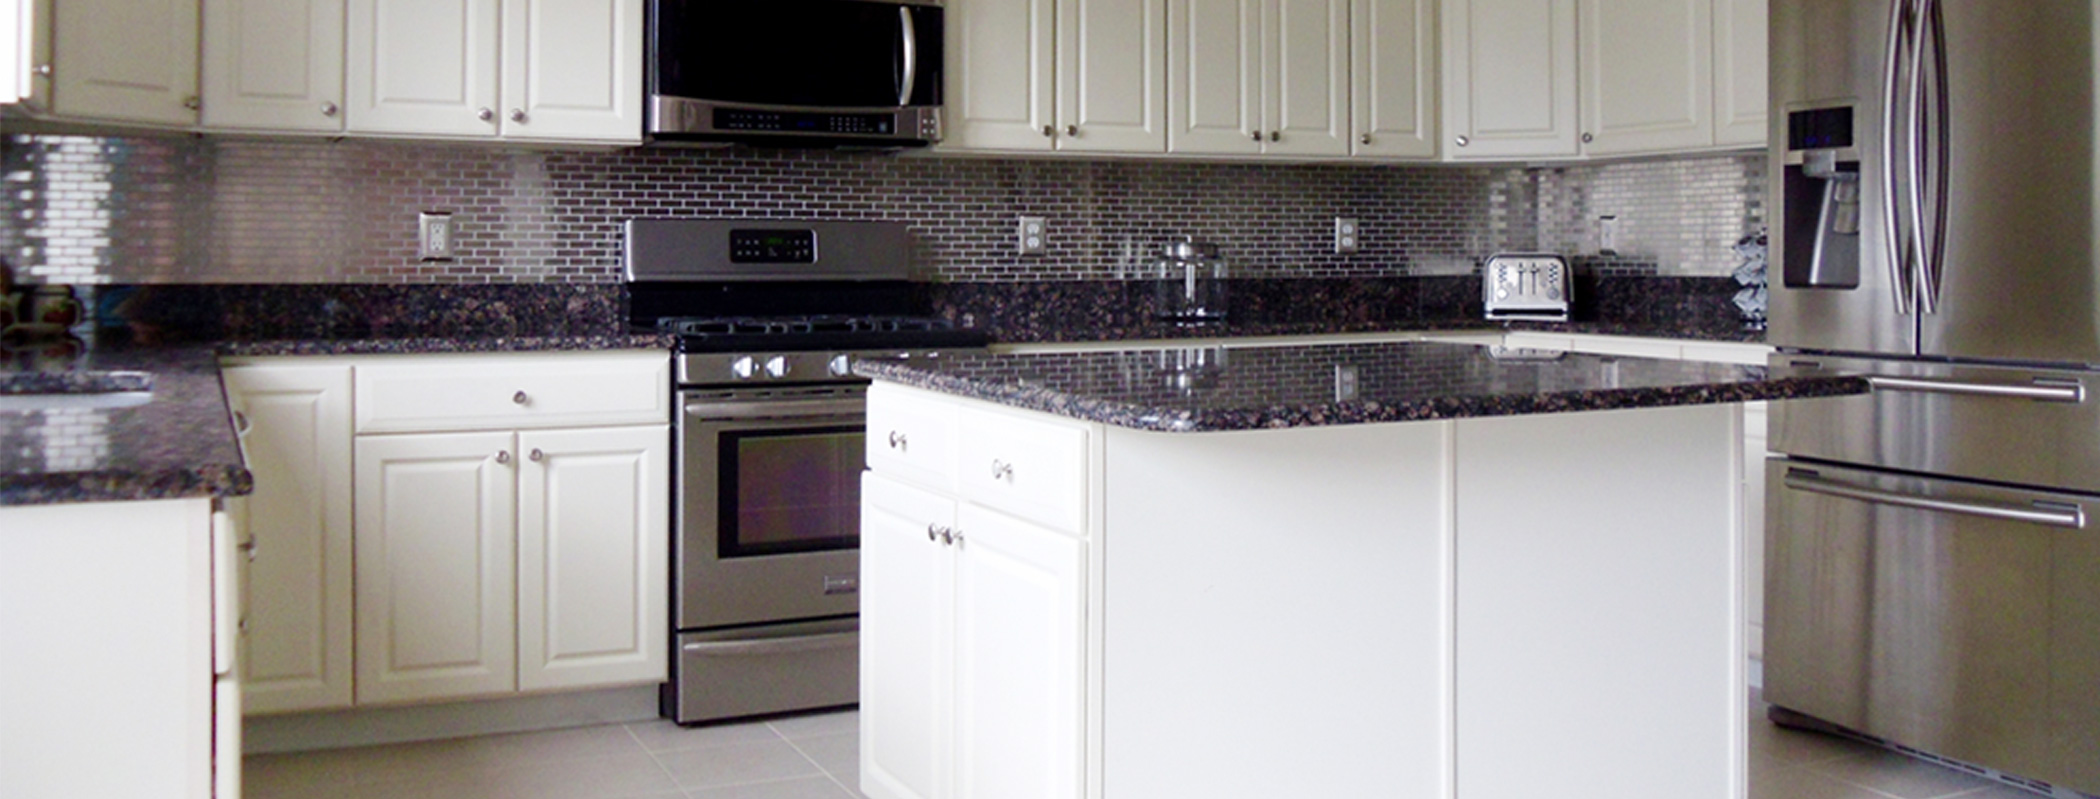 Affordable Kitchen Designers   Kitchen Remodeling, Kitchen Cabinet  Refacing, Kitchen Cabinet Doors Replacement